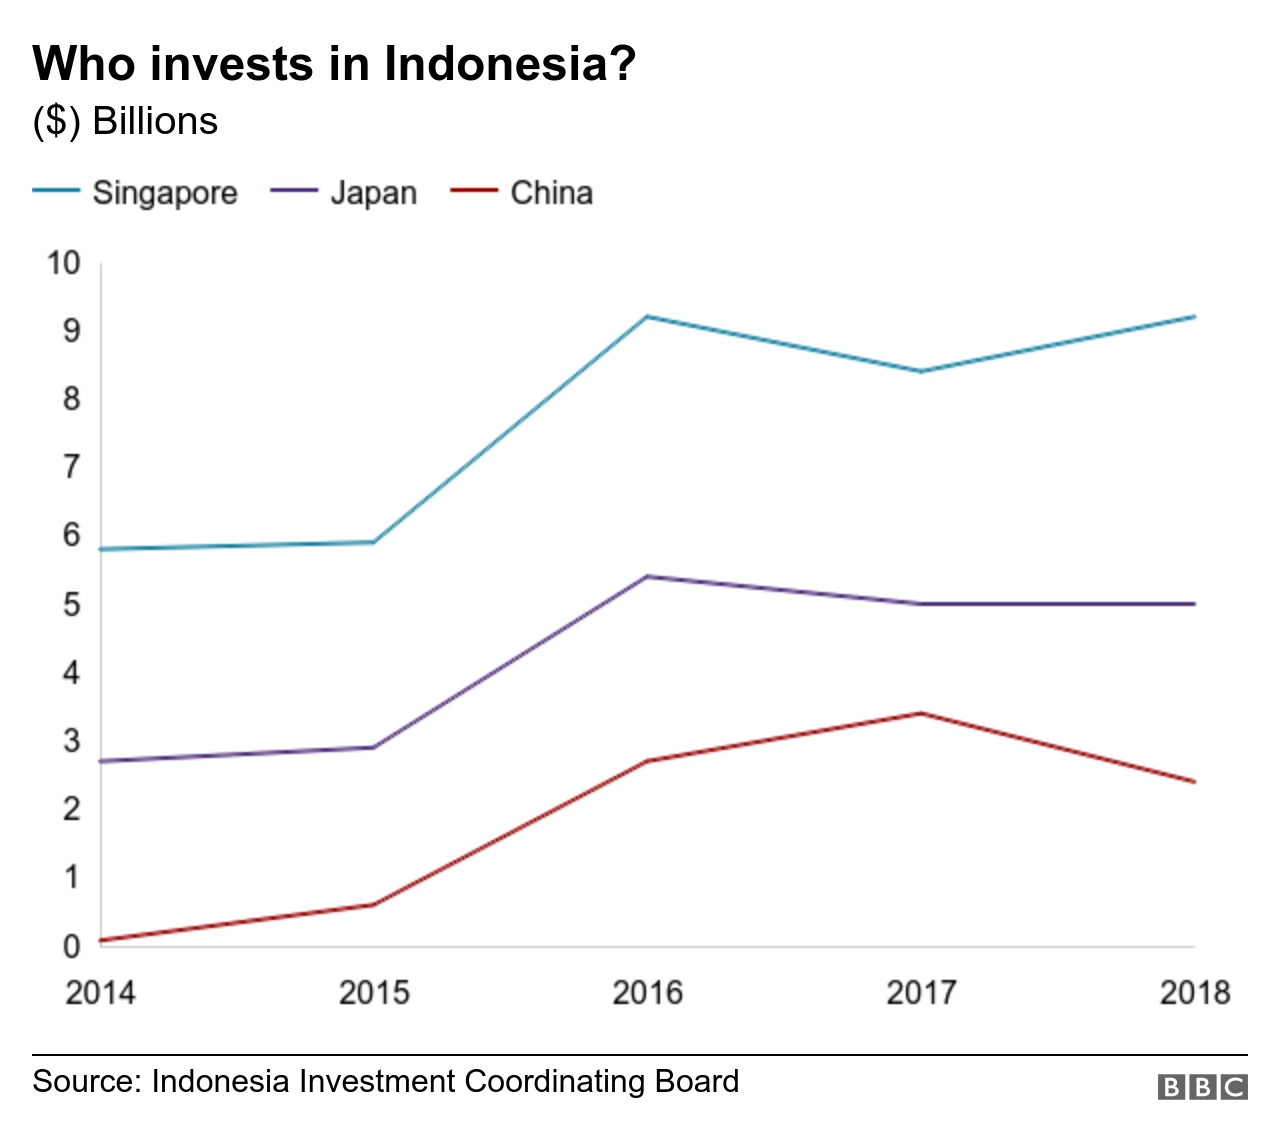 Chart shows investment in Indonesia from Singapore, Japan and China